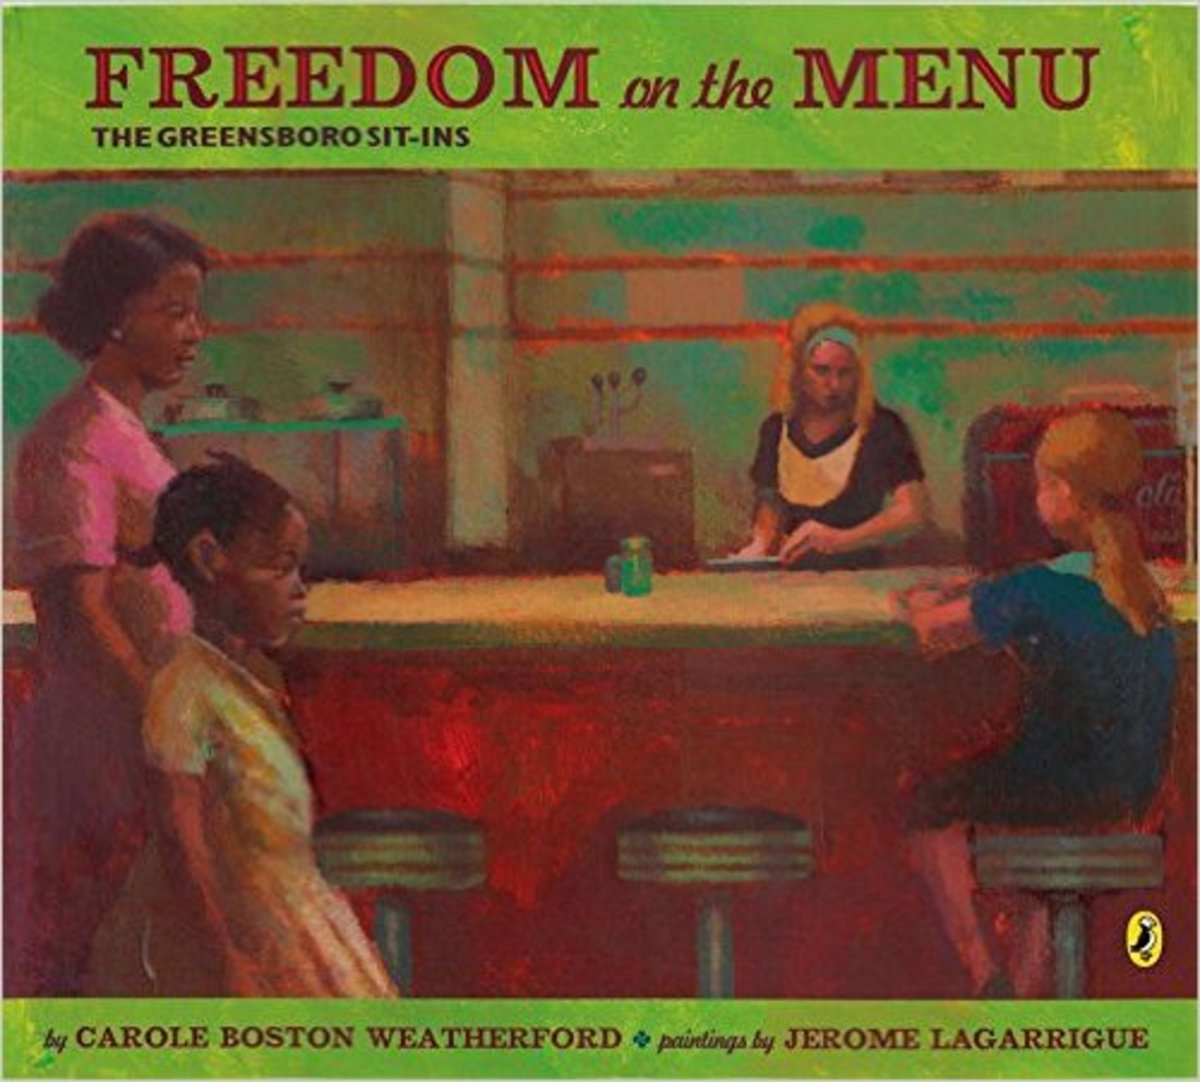 Freedom on the Menu: The Greensboro Sit-Ins by Carole Boston Weatherford